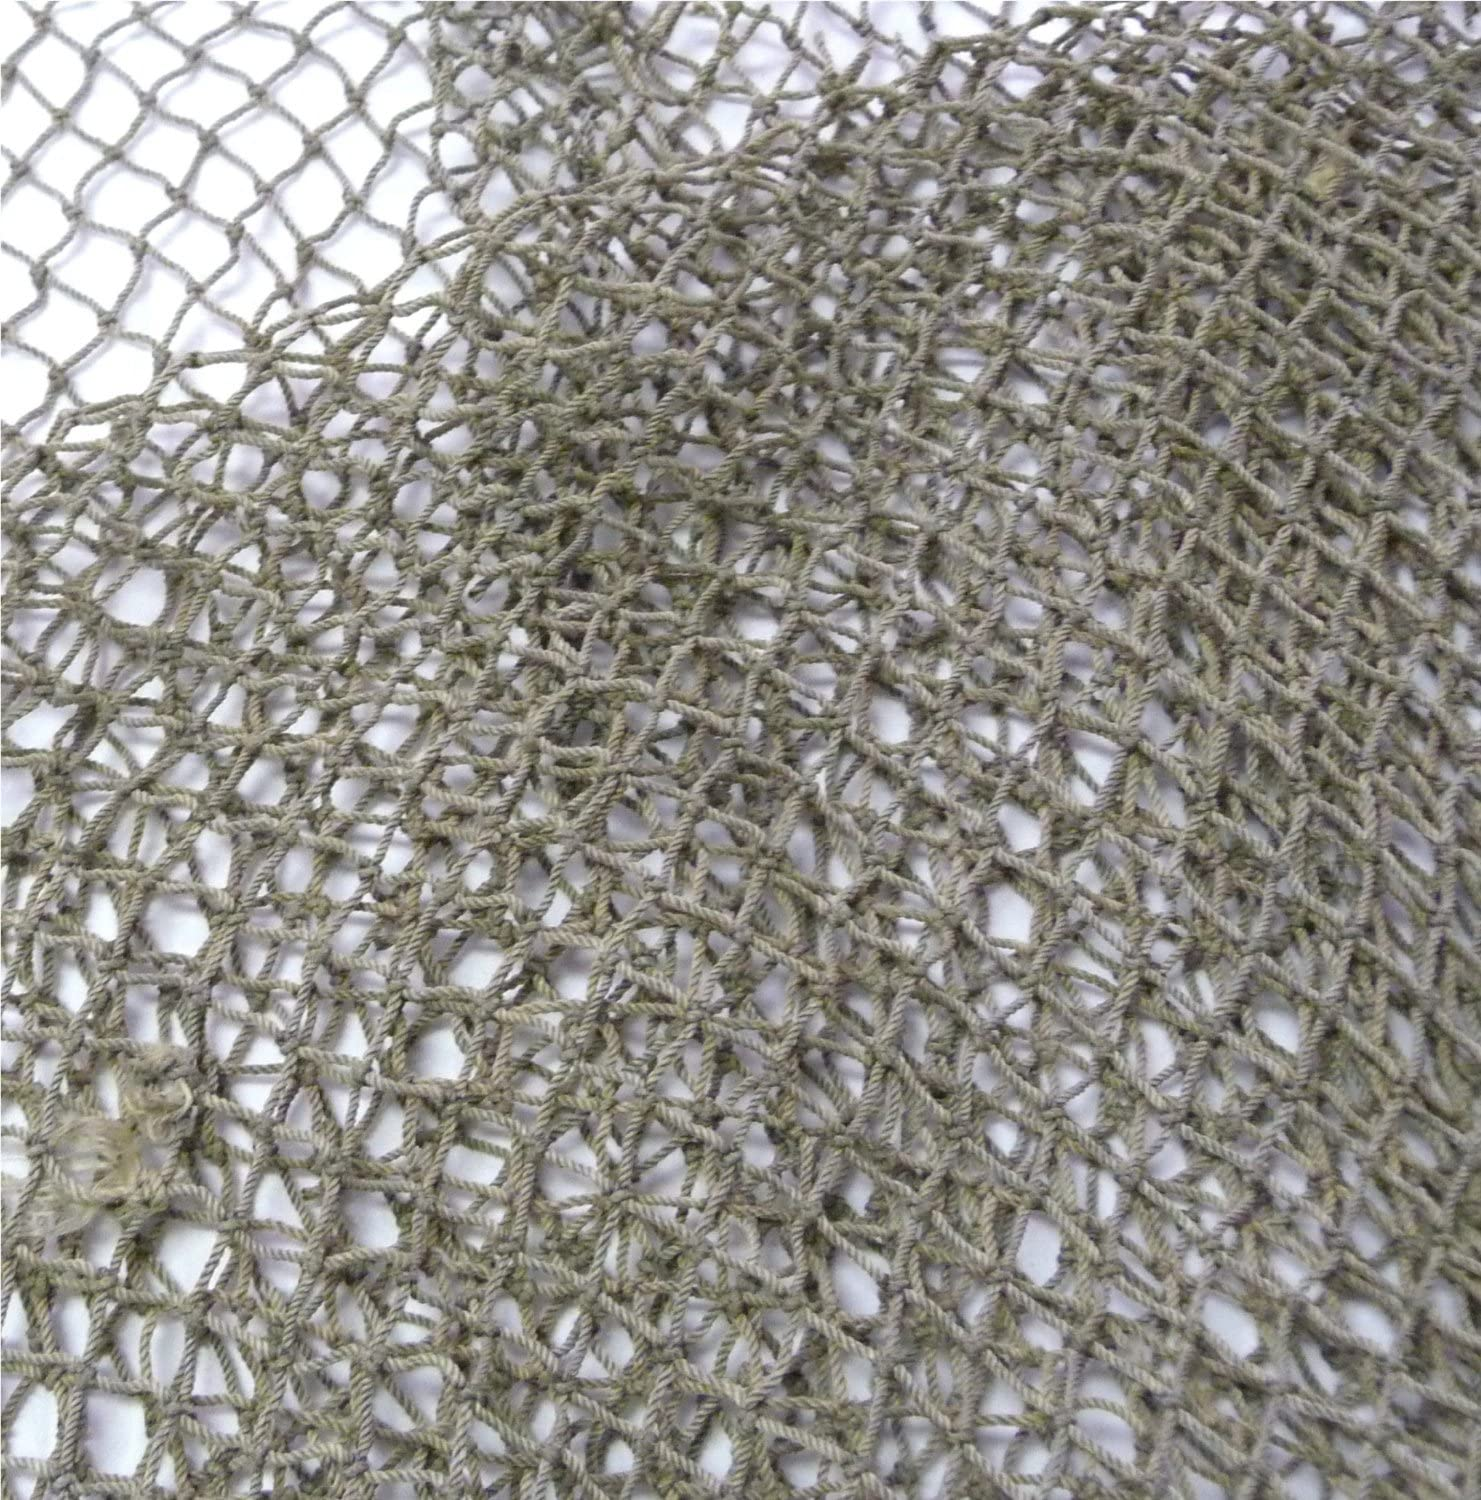 9GreenBox Nautical Decorative Fish Net 5' X 10' - Fish Netting - Rustic Beach Decor